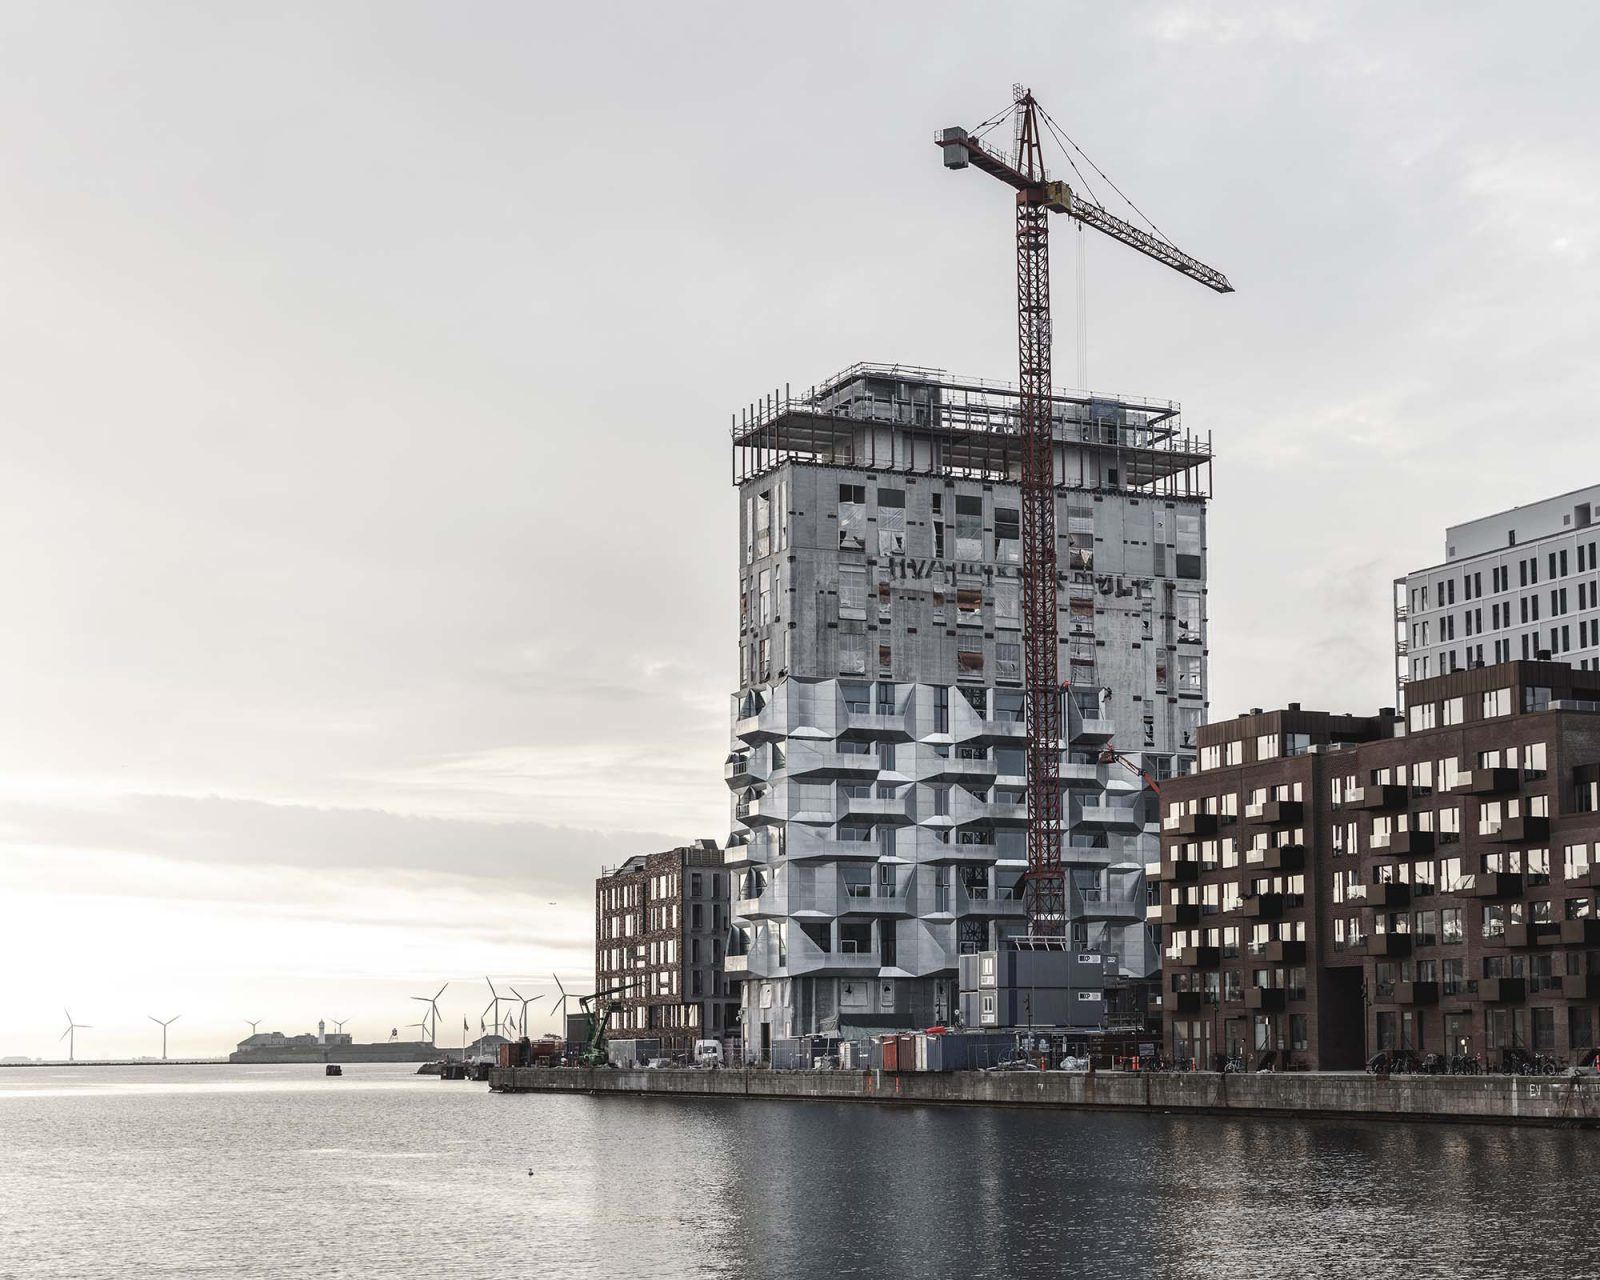 The Silo. The 62 meters and 17-storey tall transformed silo will become a natural point of orientation in Copenhagen's new neighborhood Nordhavnen. The demands for storage and handling of grain has led to magnificent spatial variation floor by floor. This will result in 40 different apartments, stacked on top of each other within the existing silo structure. In addition, public functions are located on the top and bottom floor to ensure a multi-dimensional experience for the various users of the building. The Silo will thus be inhabited, but at the same time also be a destination for all Copenhageners; a kind of urban silo.